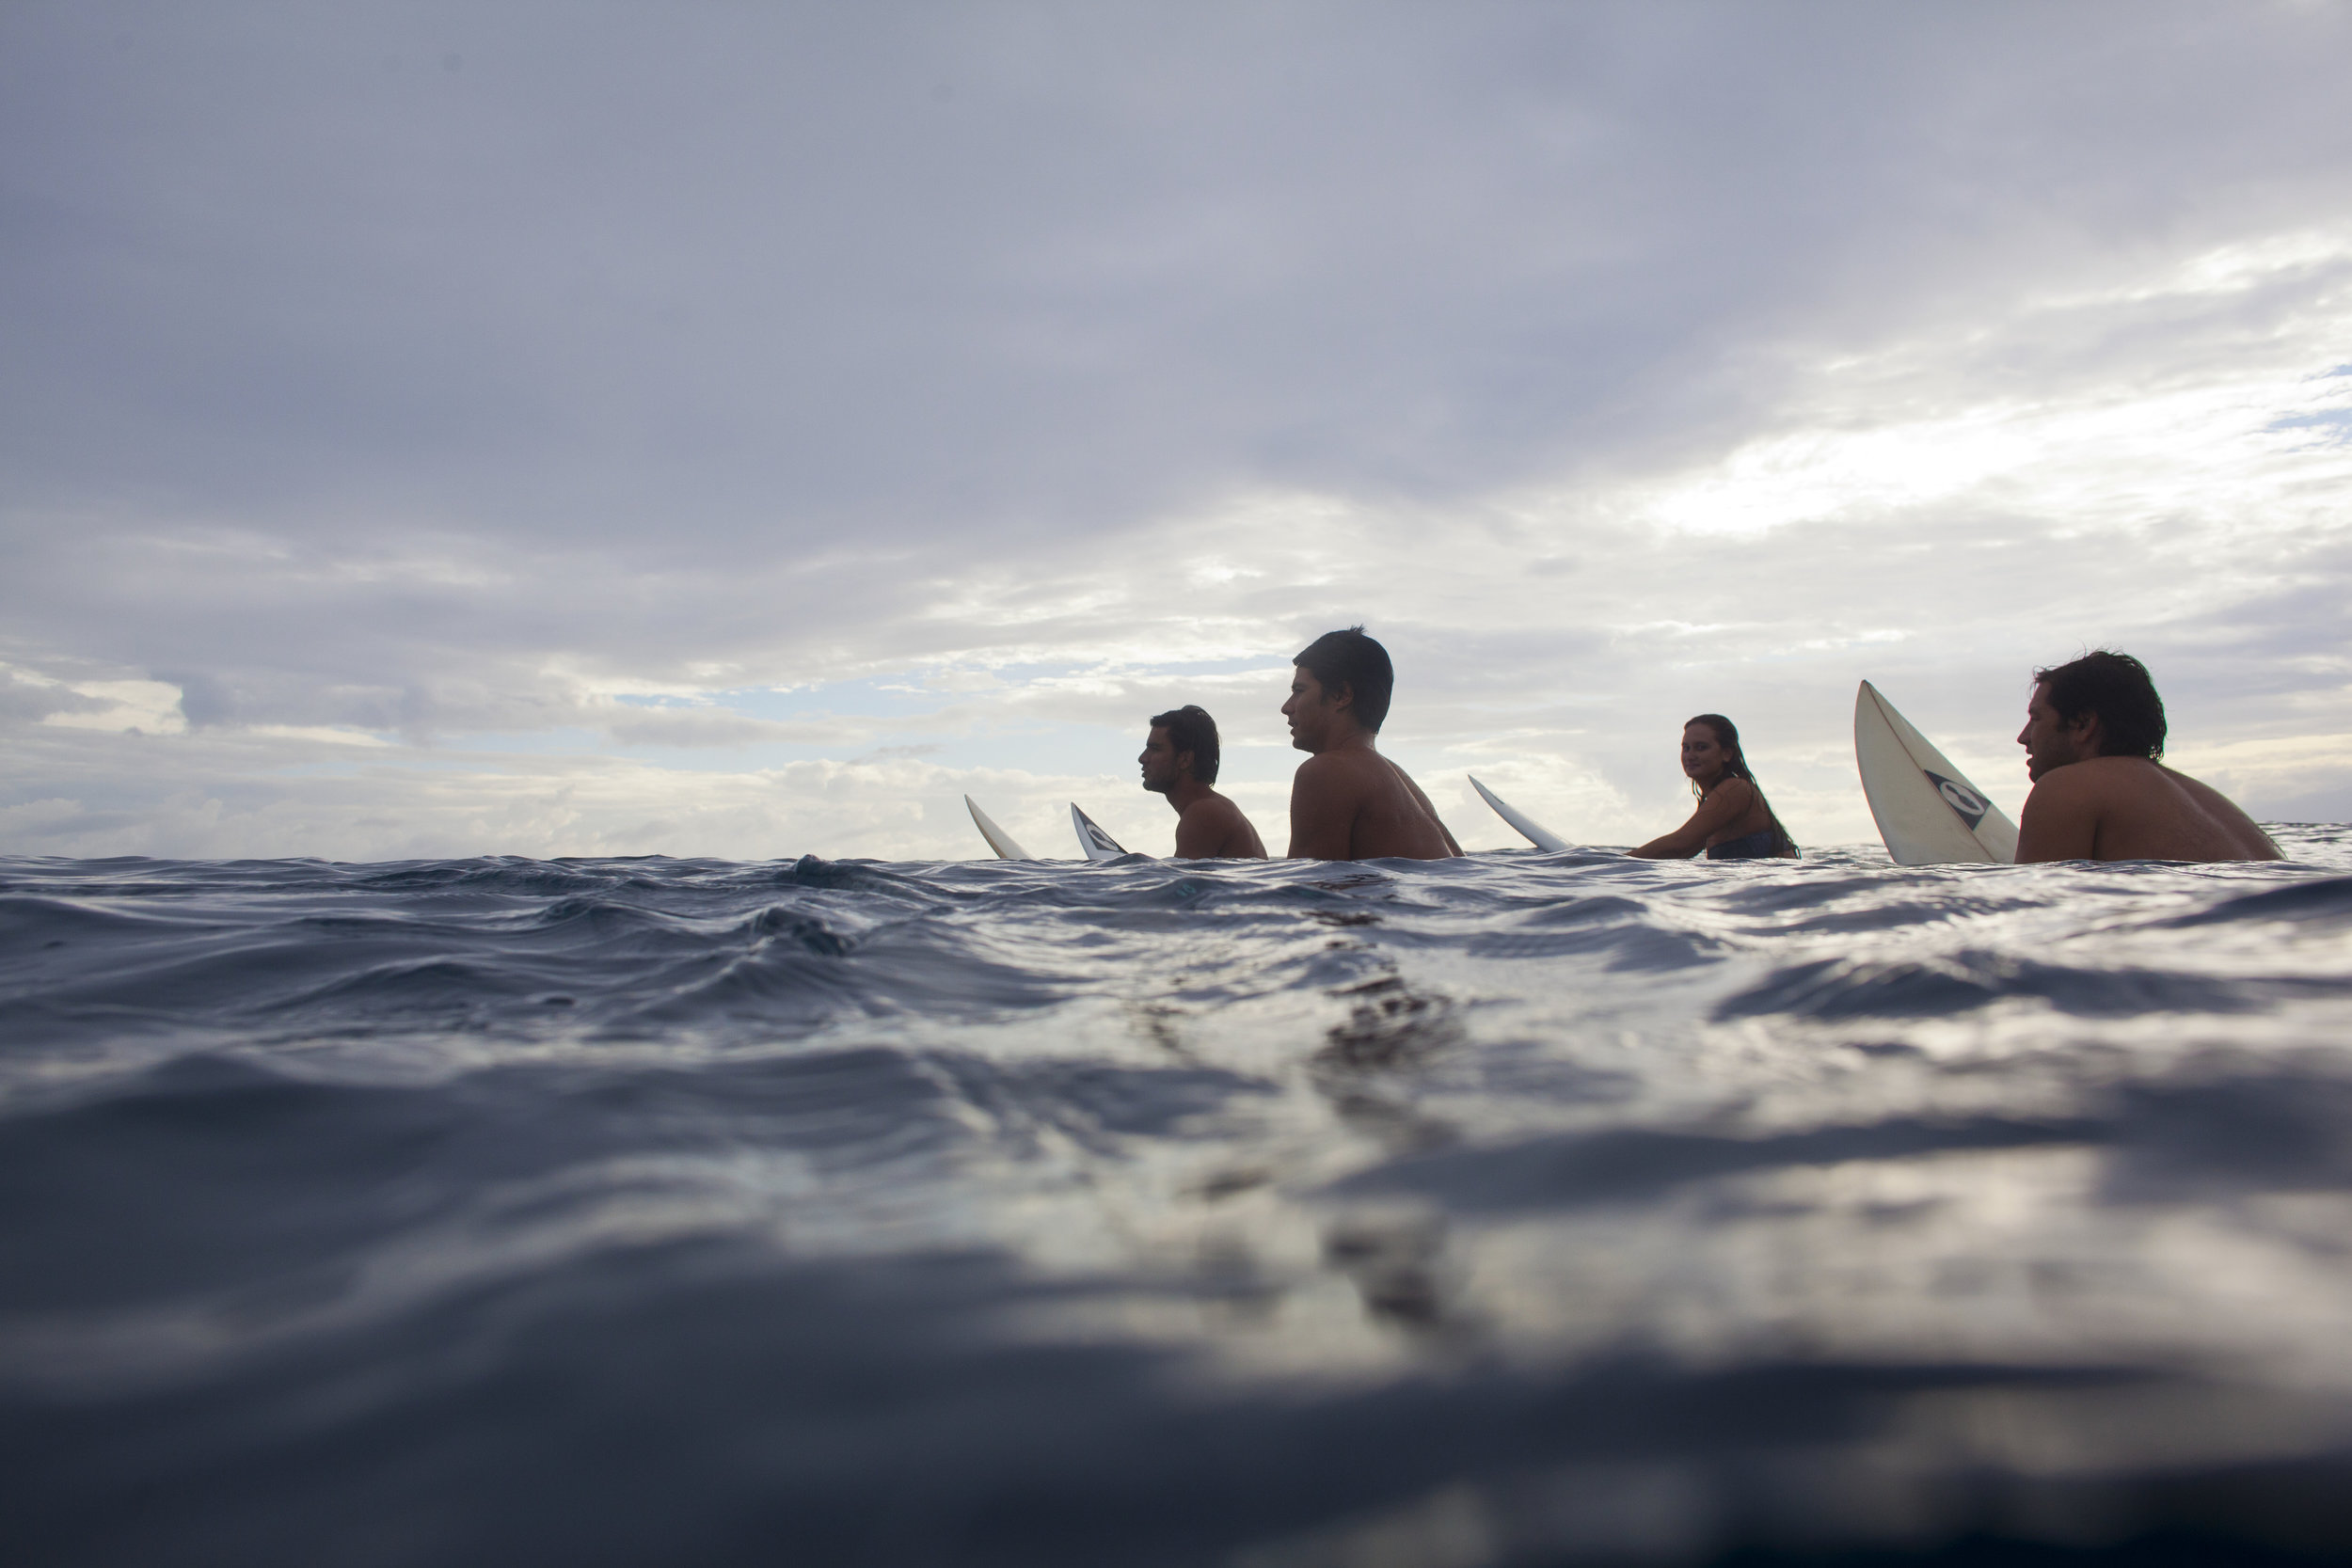 Surfers waiting for the perfect wave in Tahiti